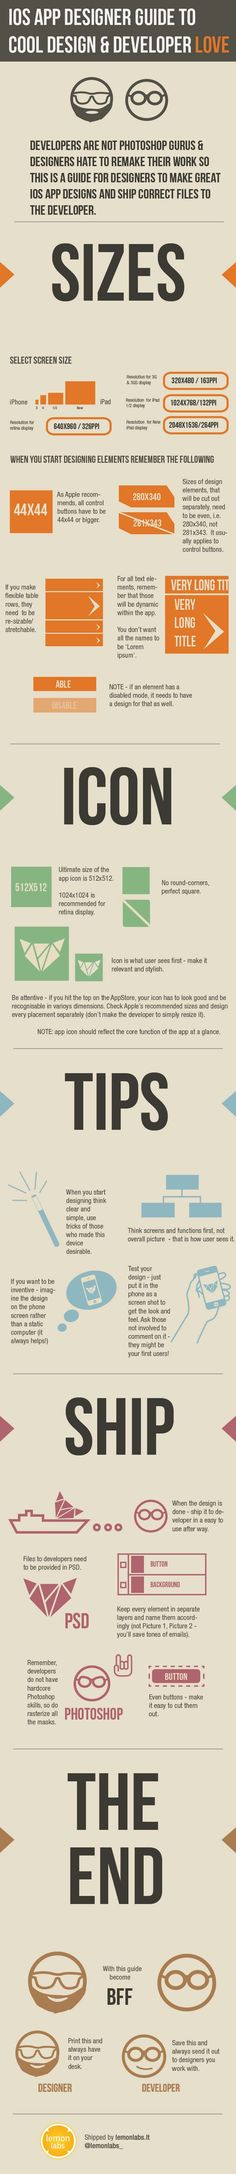 Infographic: A Guide On How To Create Great iOS App Designs - DesignTAXI.com